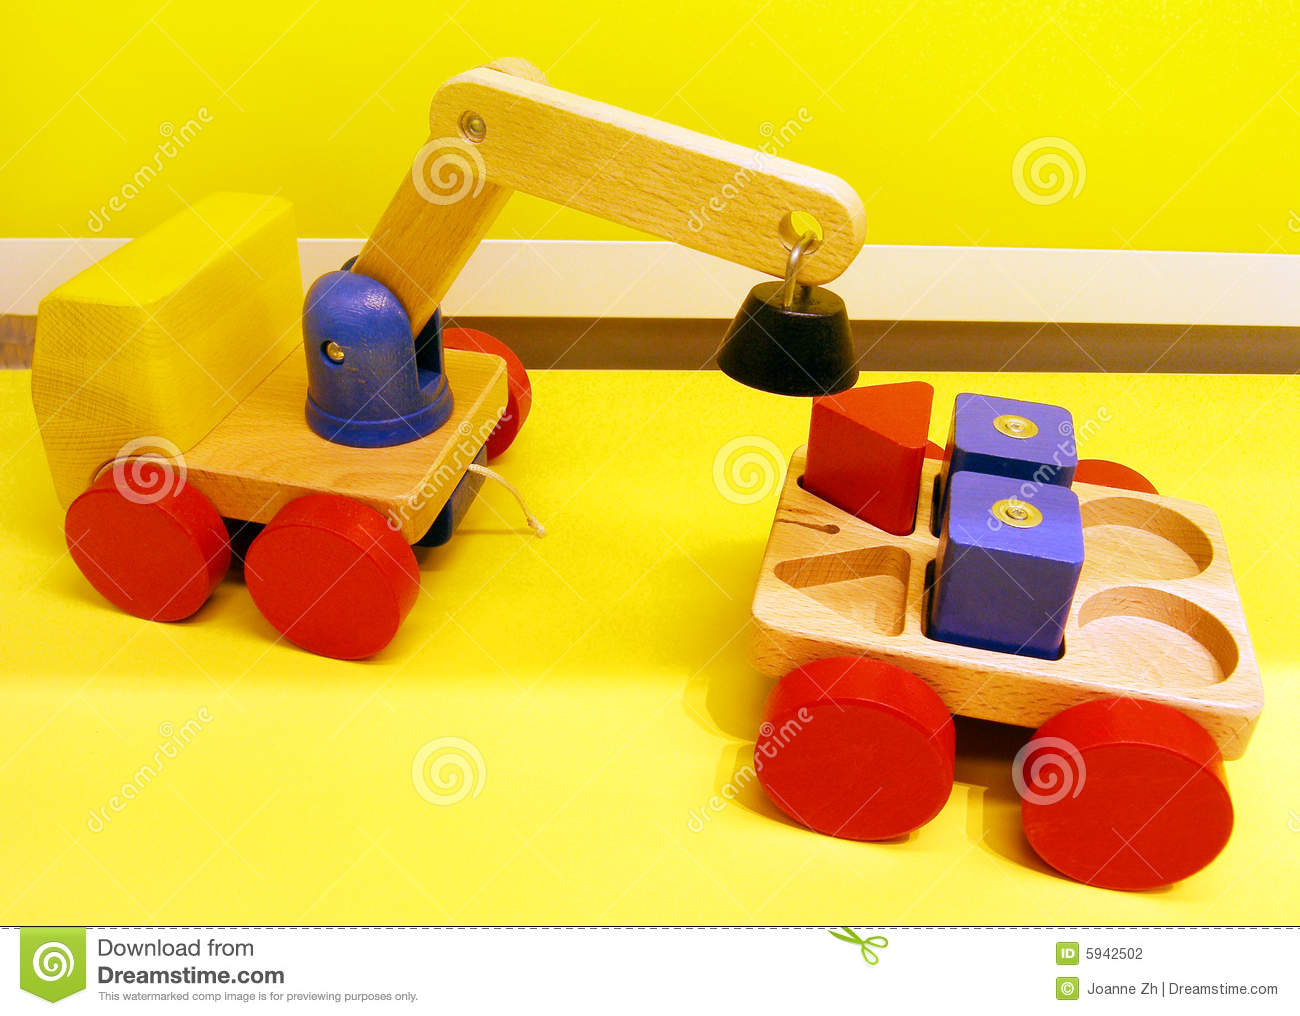 Magnetic Toy Trucks Stock Photography   Image  5942502